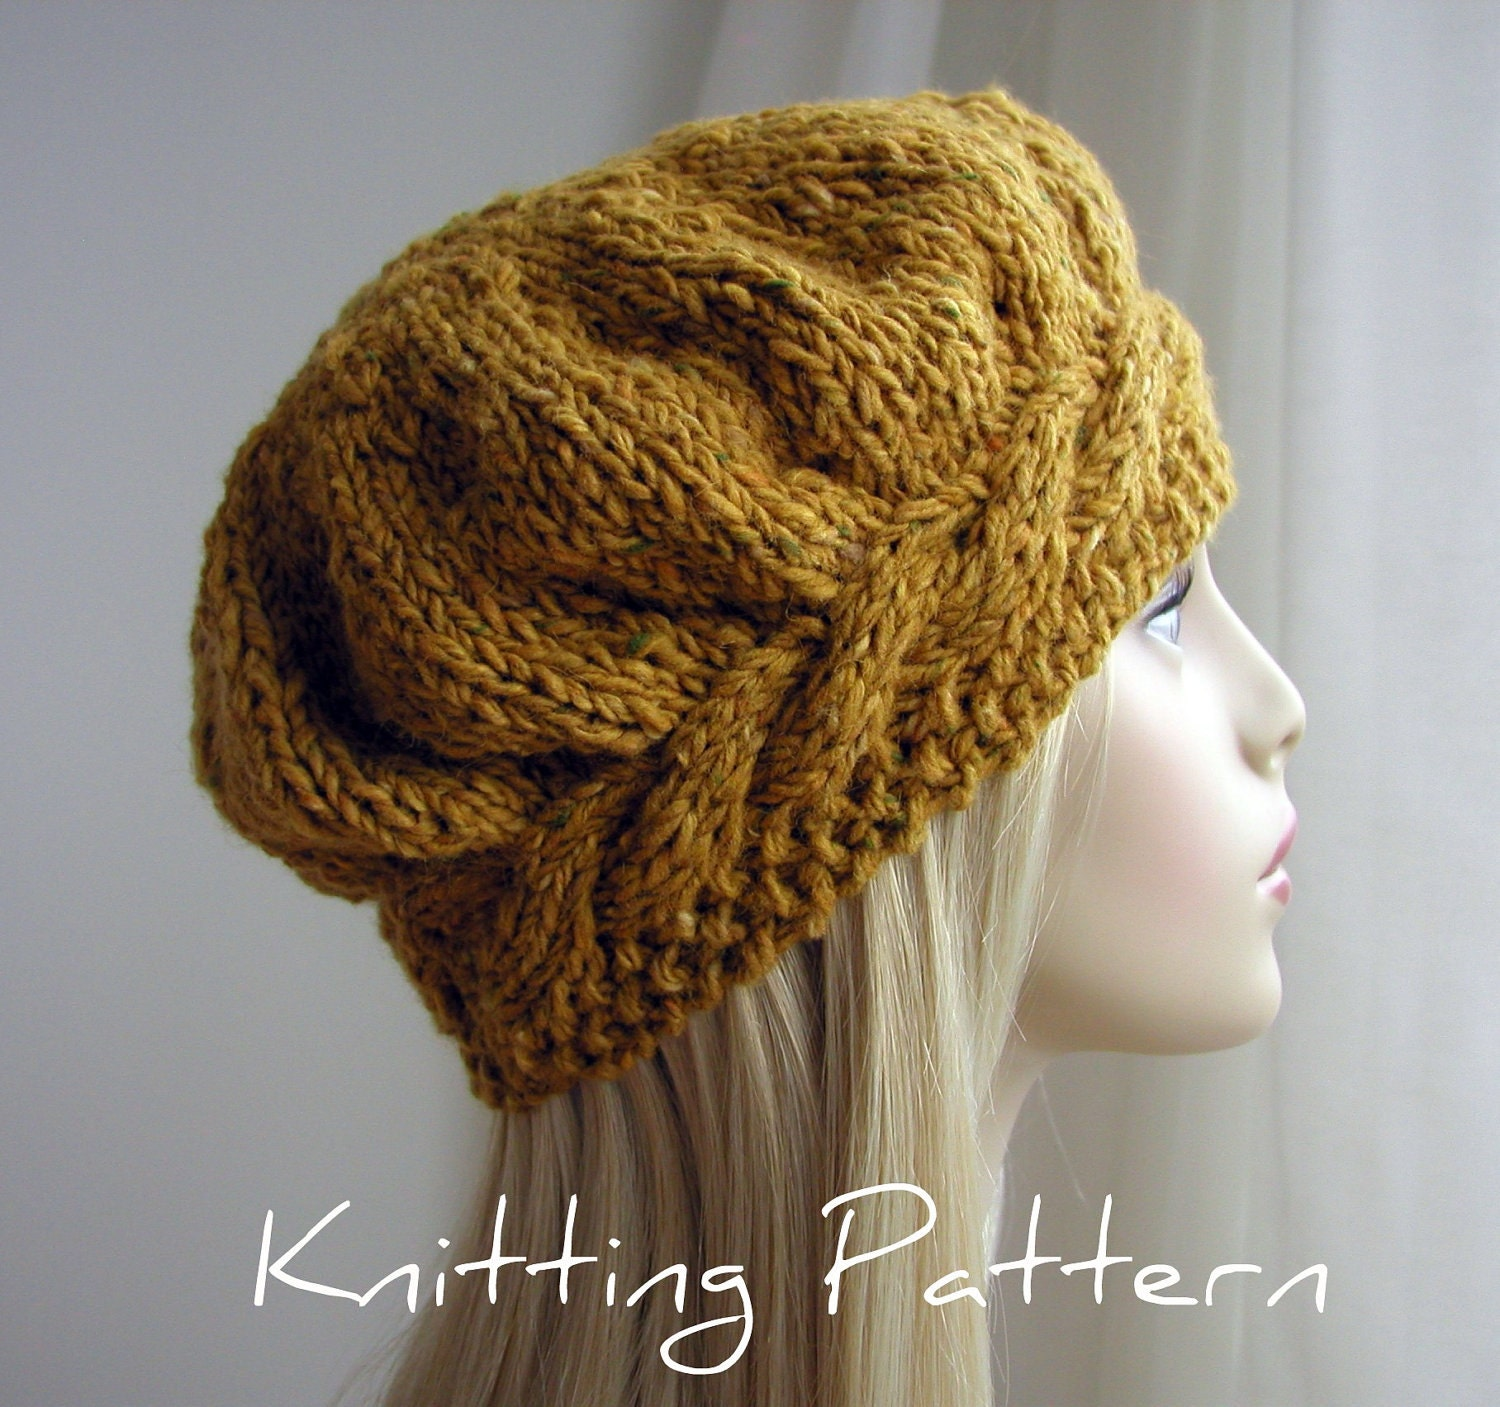 Free Knitting Pattern Beret Straight Needles : Free Knitted Beret Patterns Patterns Gallery